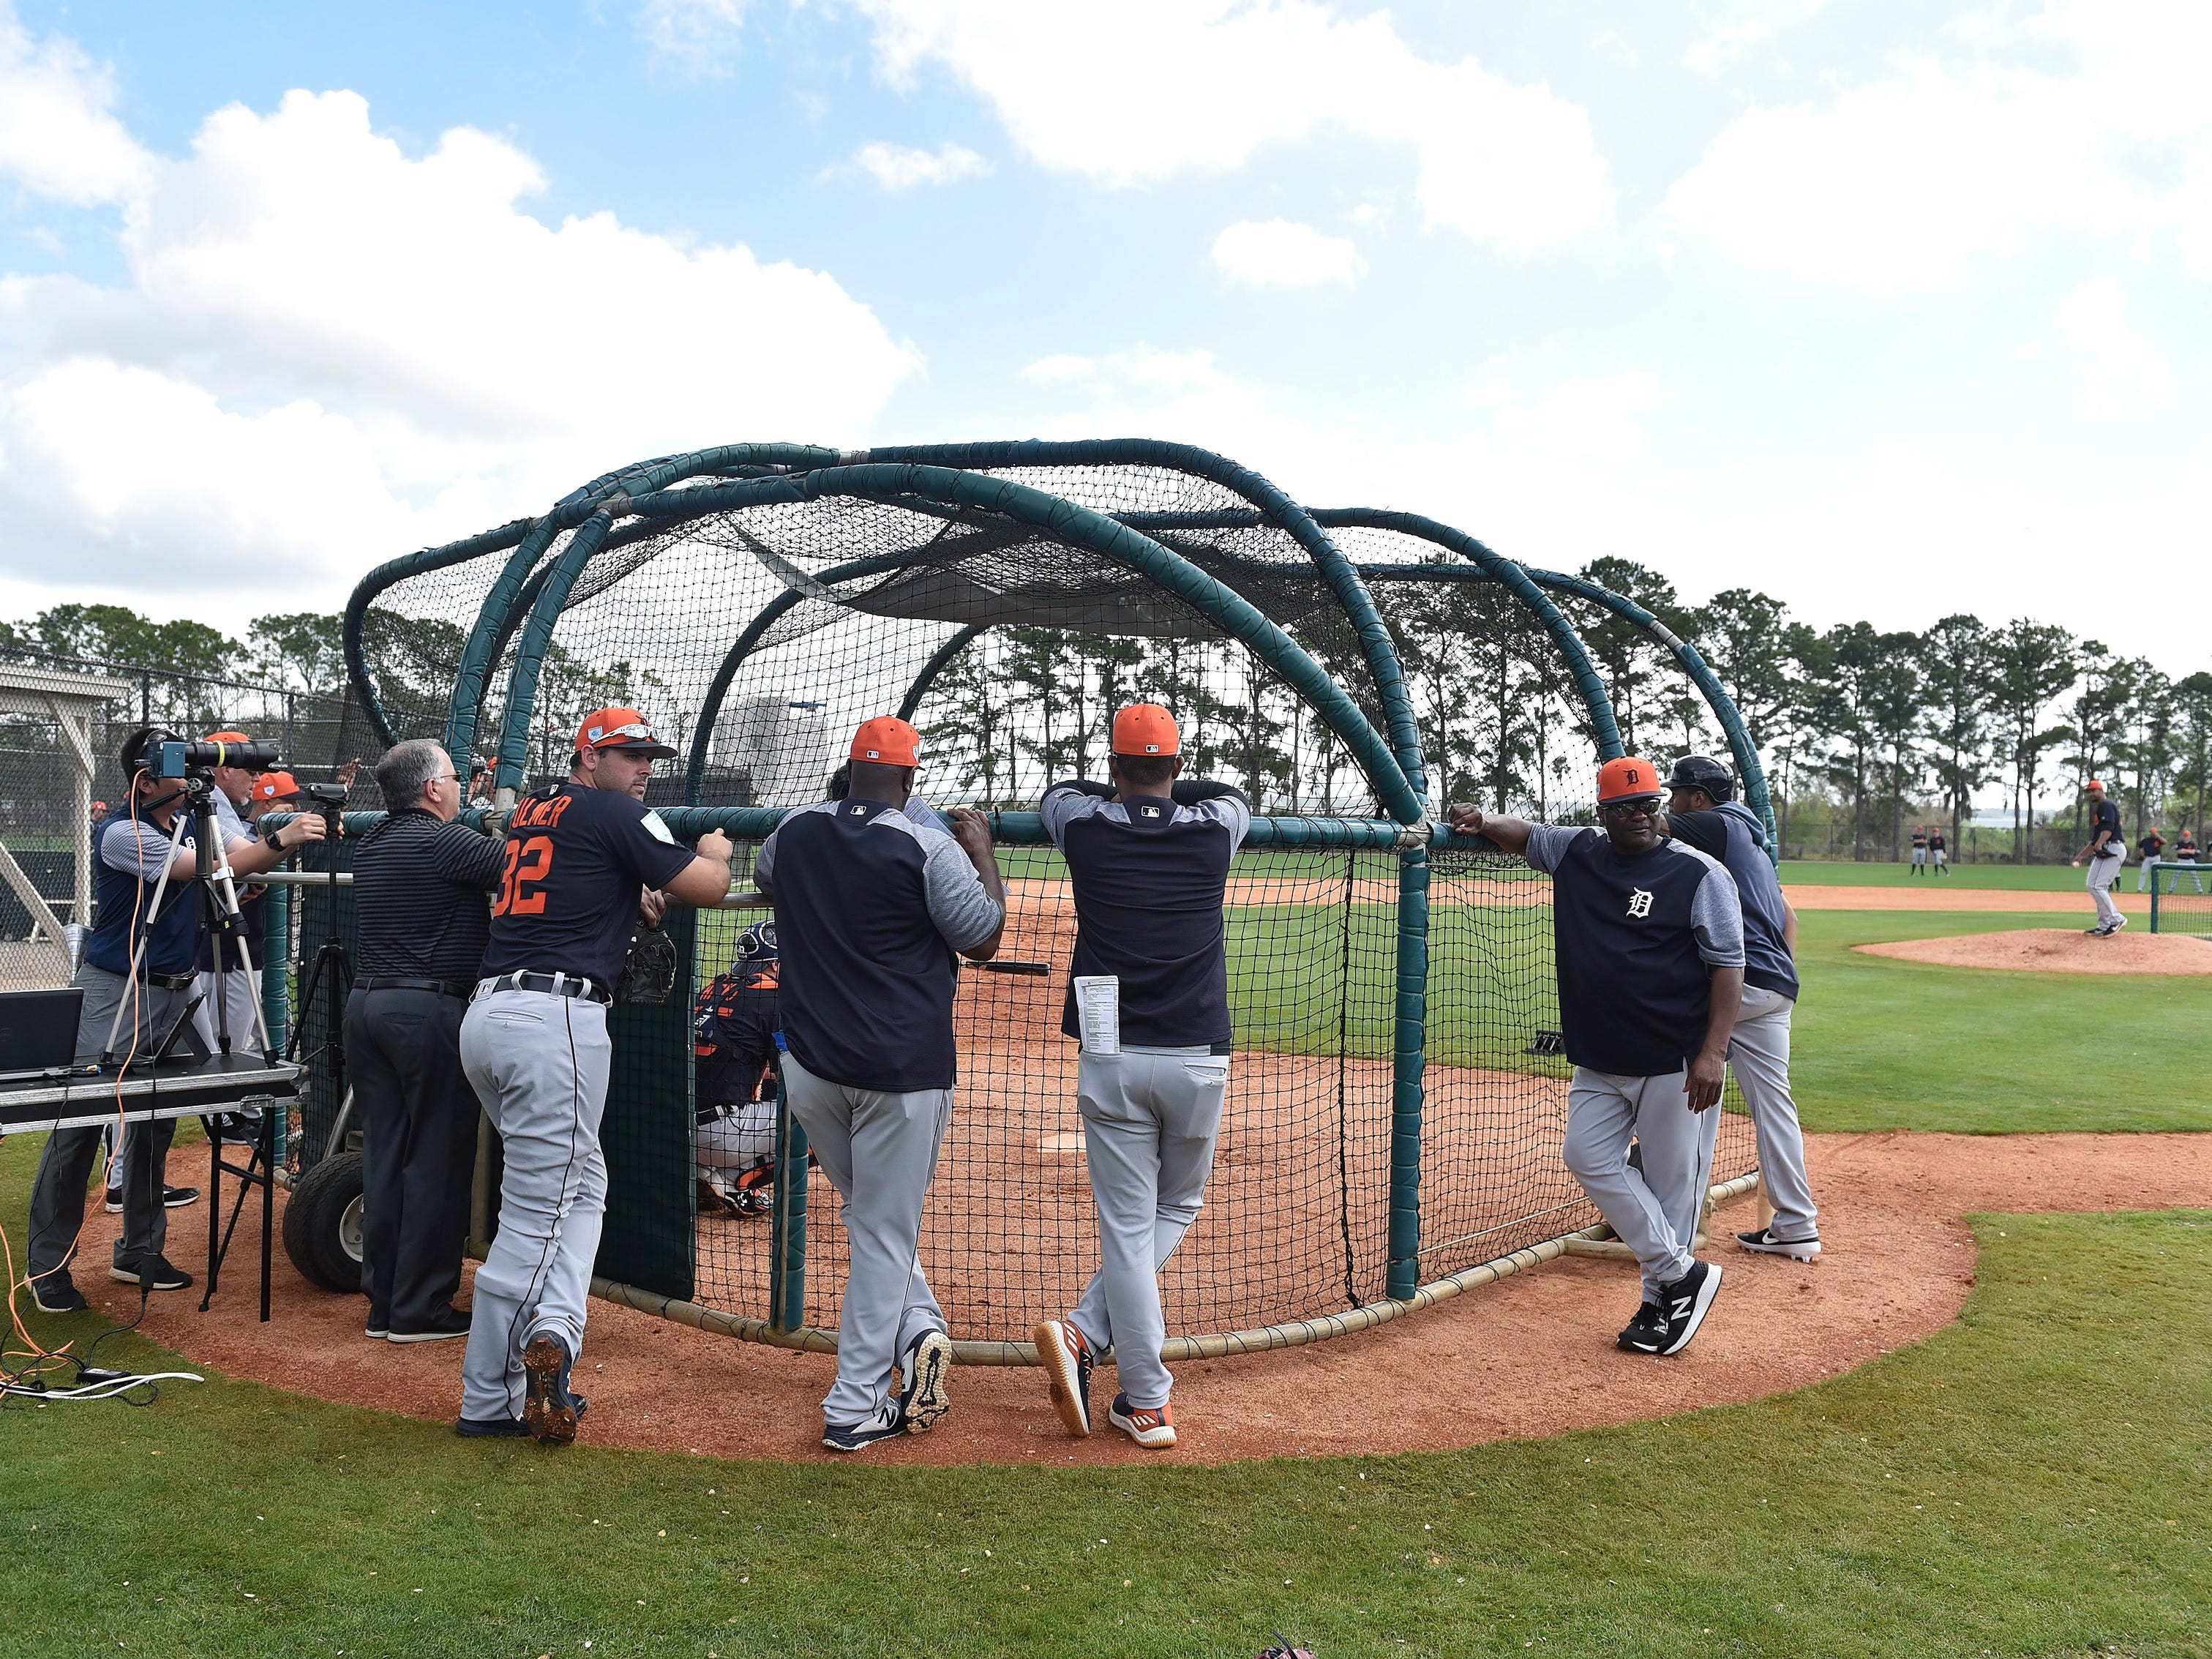 Tigers pitcher Michael Fulmer, left, and hitting coach Lloyd McClendon, right, turn to talk with someone during a break in live batting practice.